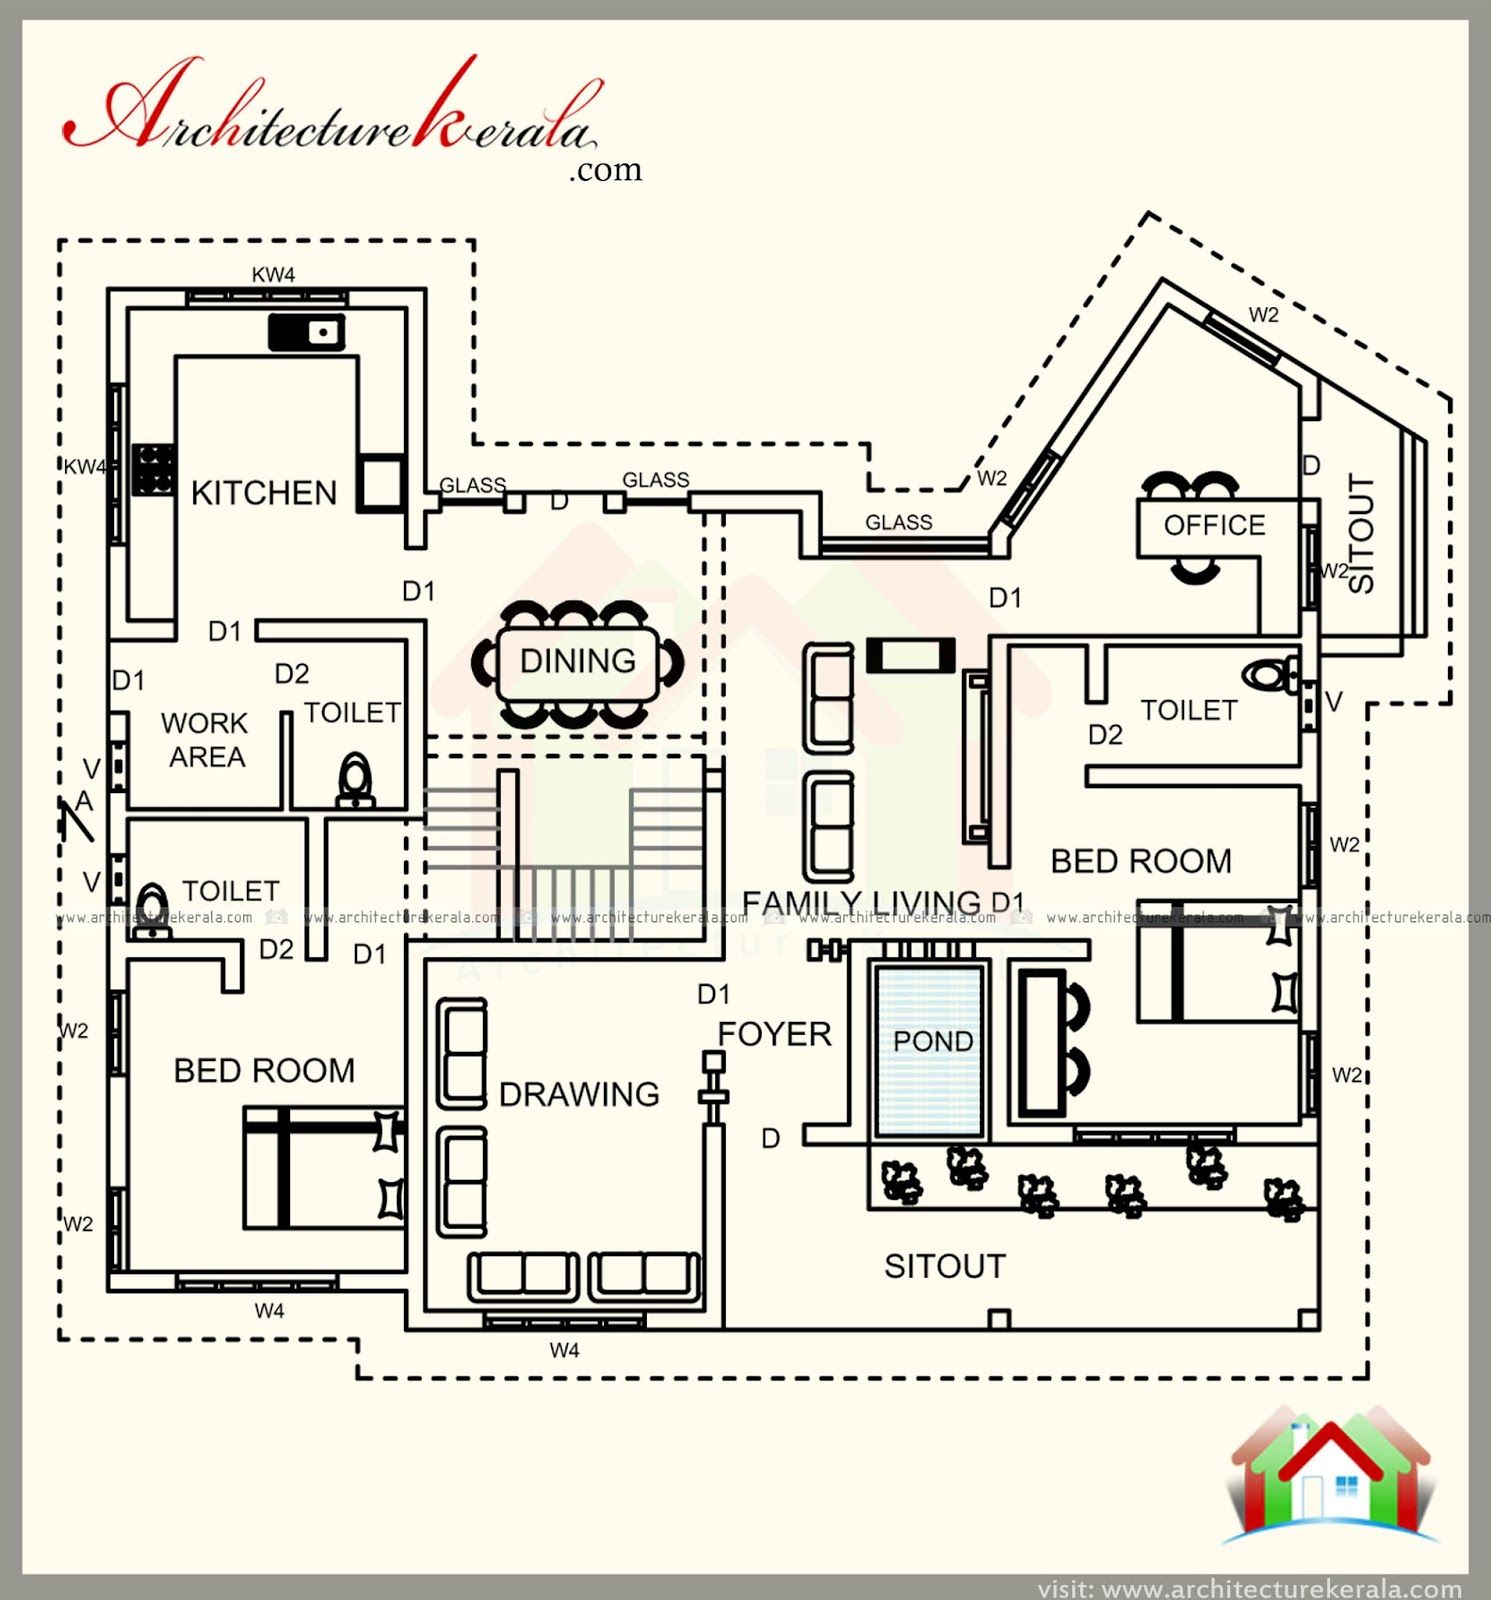 4 sq fr house plan with contemporary style elevation , 4